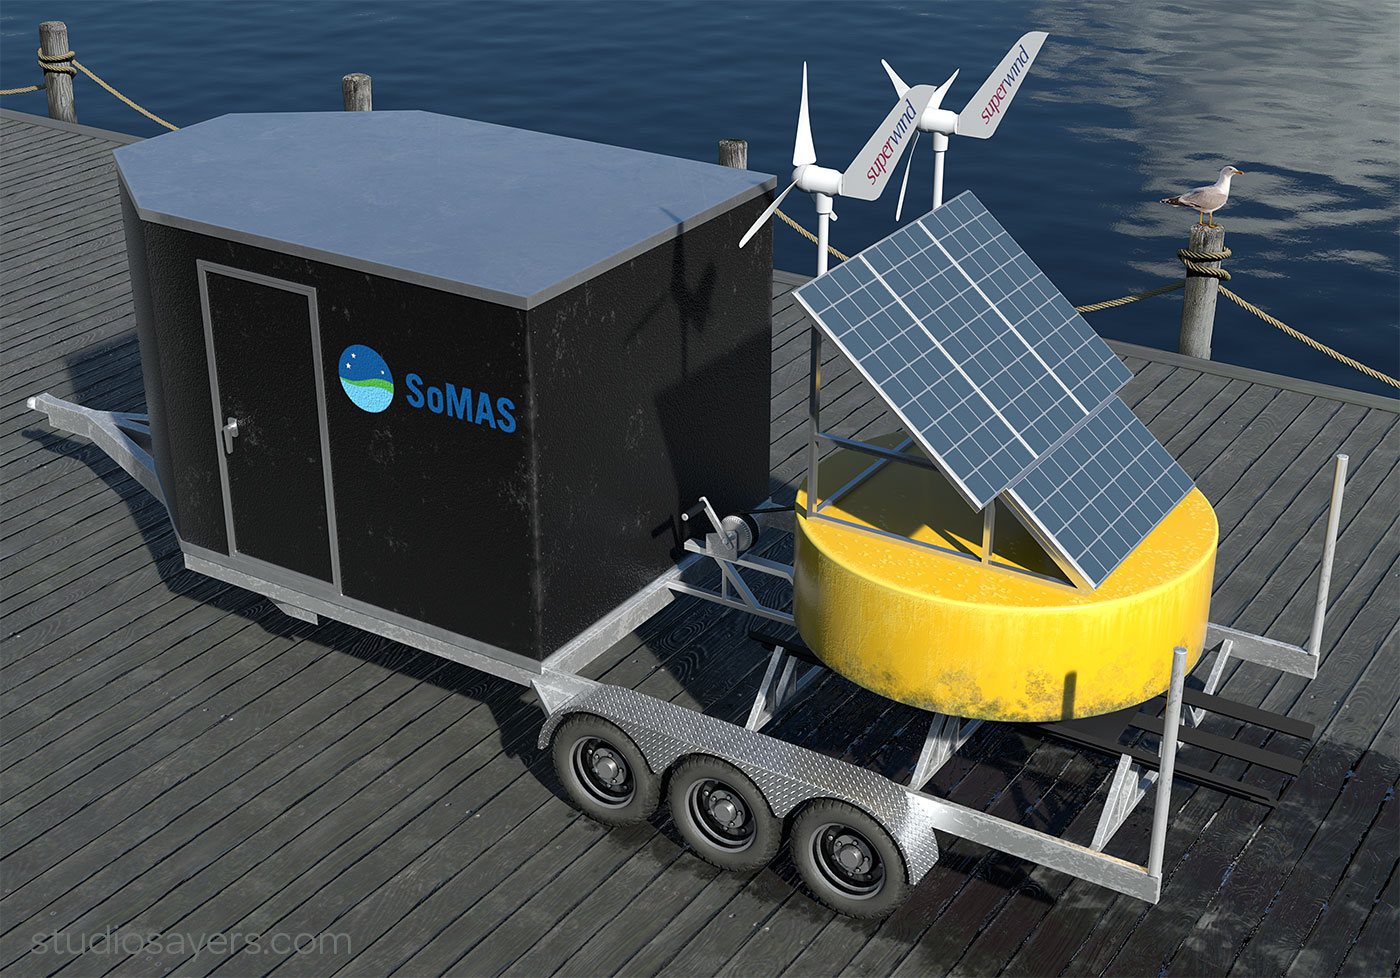 3d illustration of a power and communications buoy with trailer